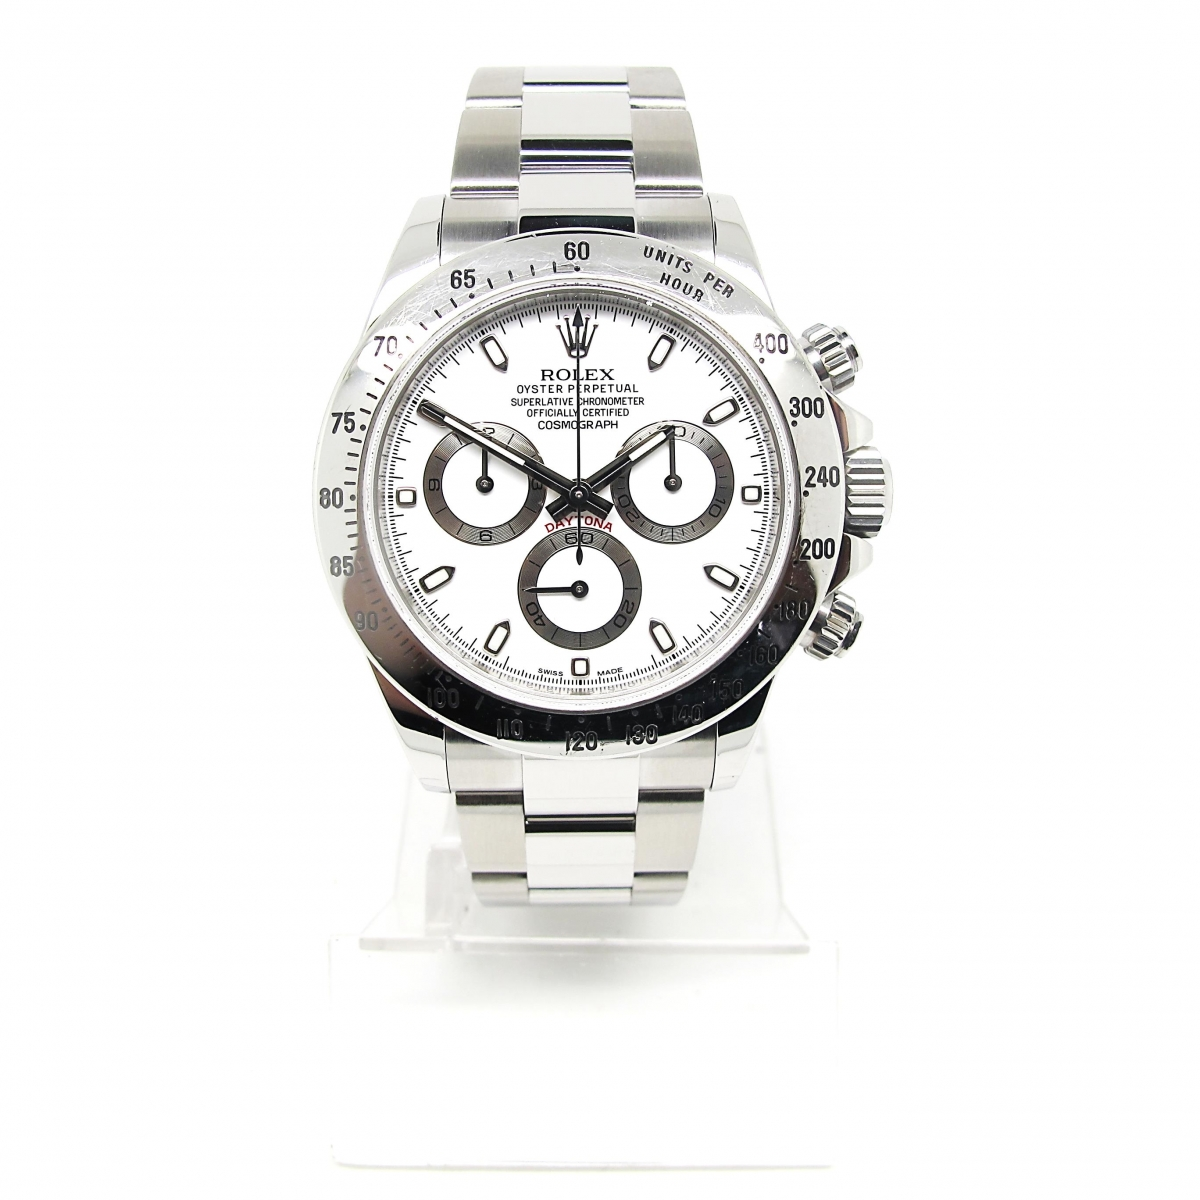 Rolex Daytona 116520 Vintage Watch Specialists Sellers And Buyers Of Tag Heuer Rolex Cartier Breitling Omega Panerai Lecoultre Iwc Vintage Watch Shop